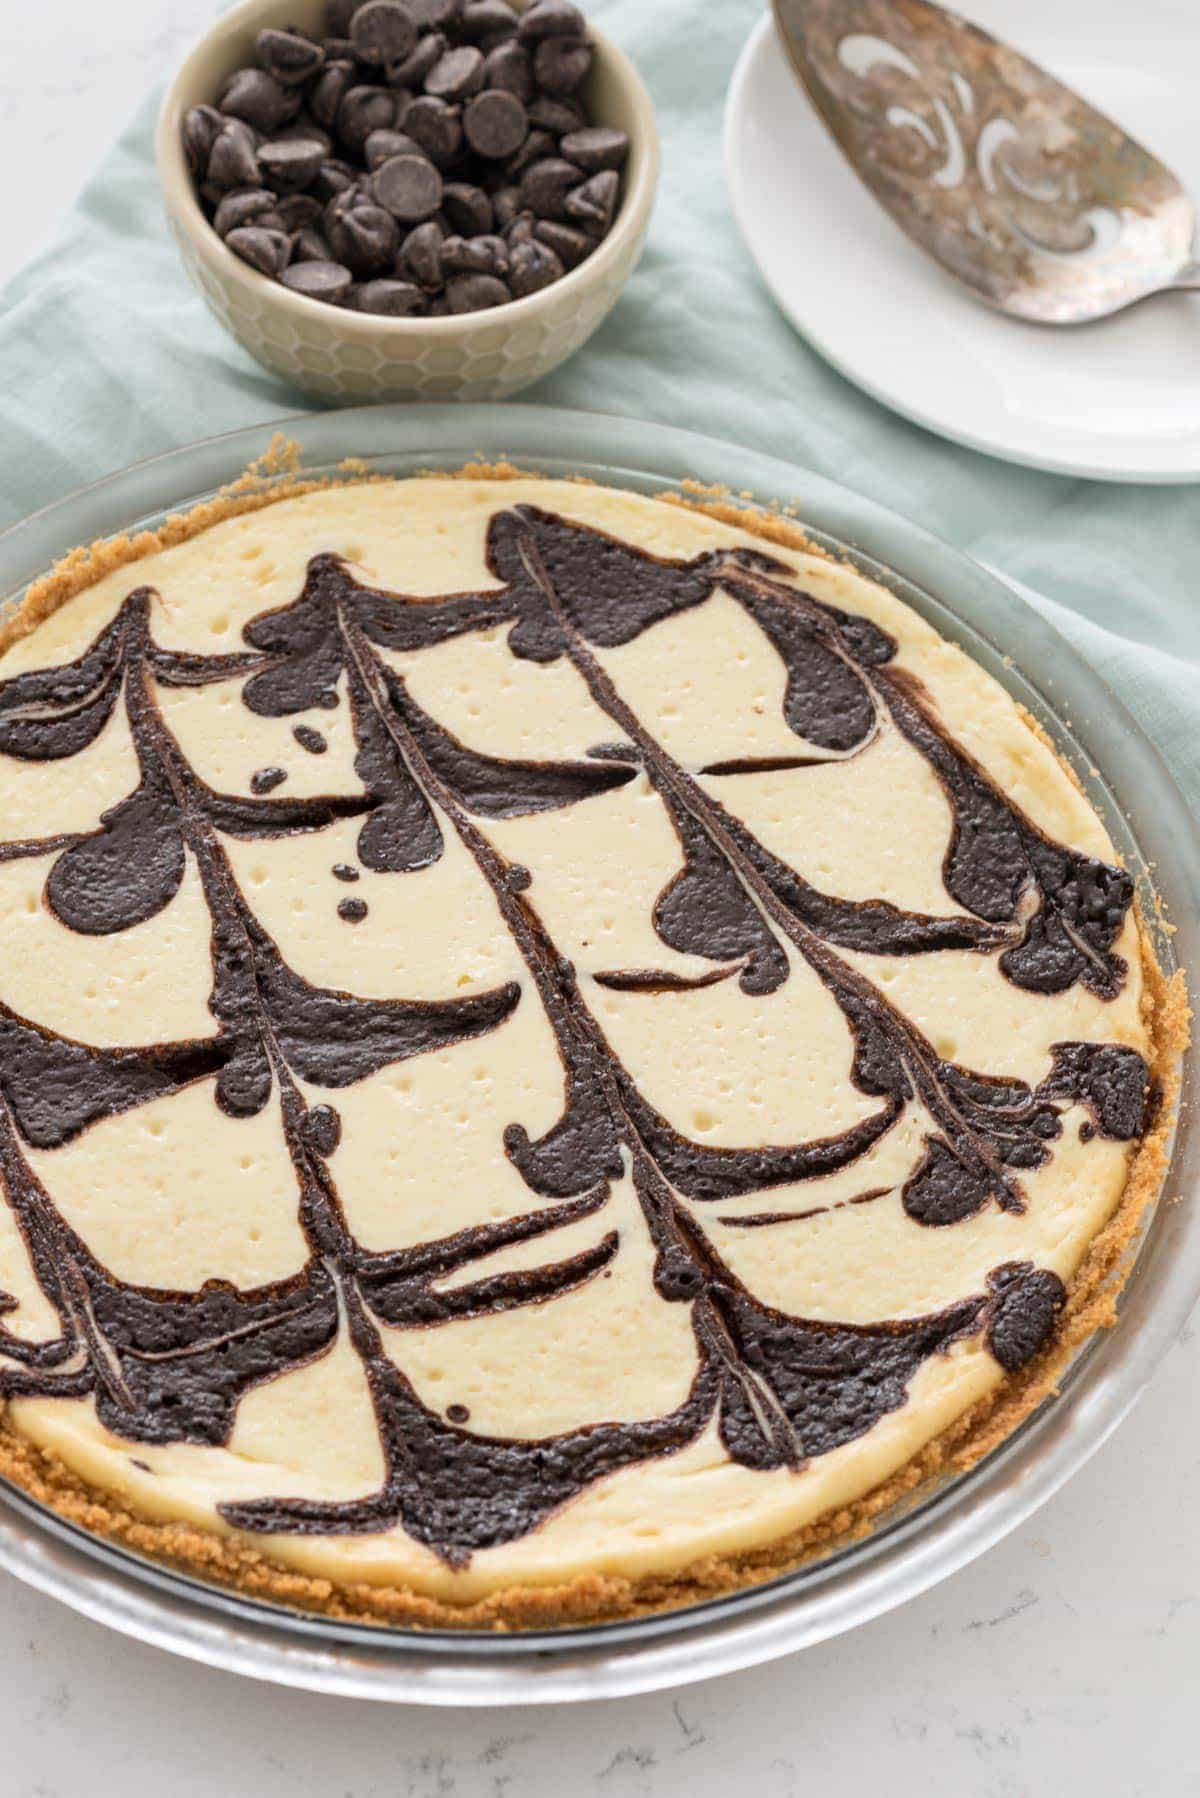 Chocolate Swirl Cheesecake Pie - this baked cheesecake recipe is so easy! No water bath or fussy steps, just a creamy cheesecake swirled with chocolate!